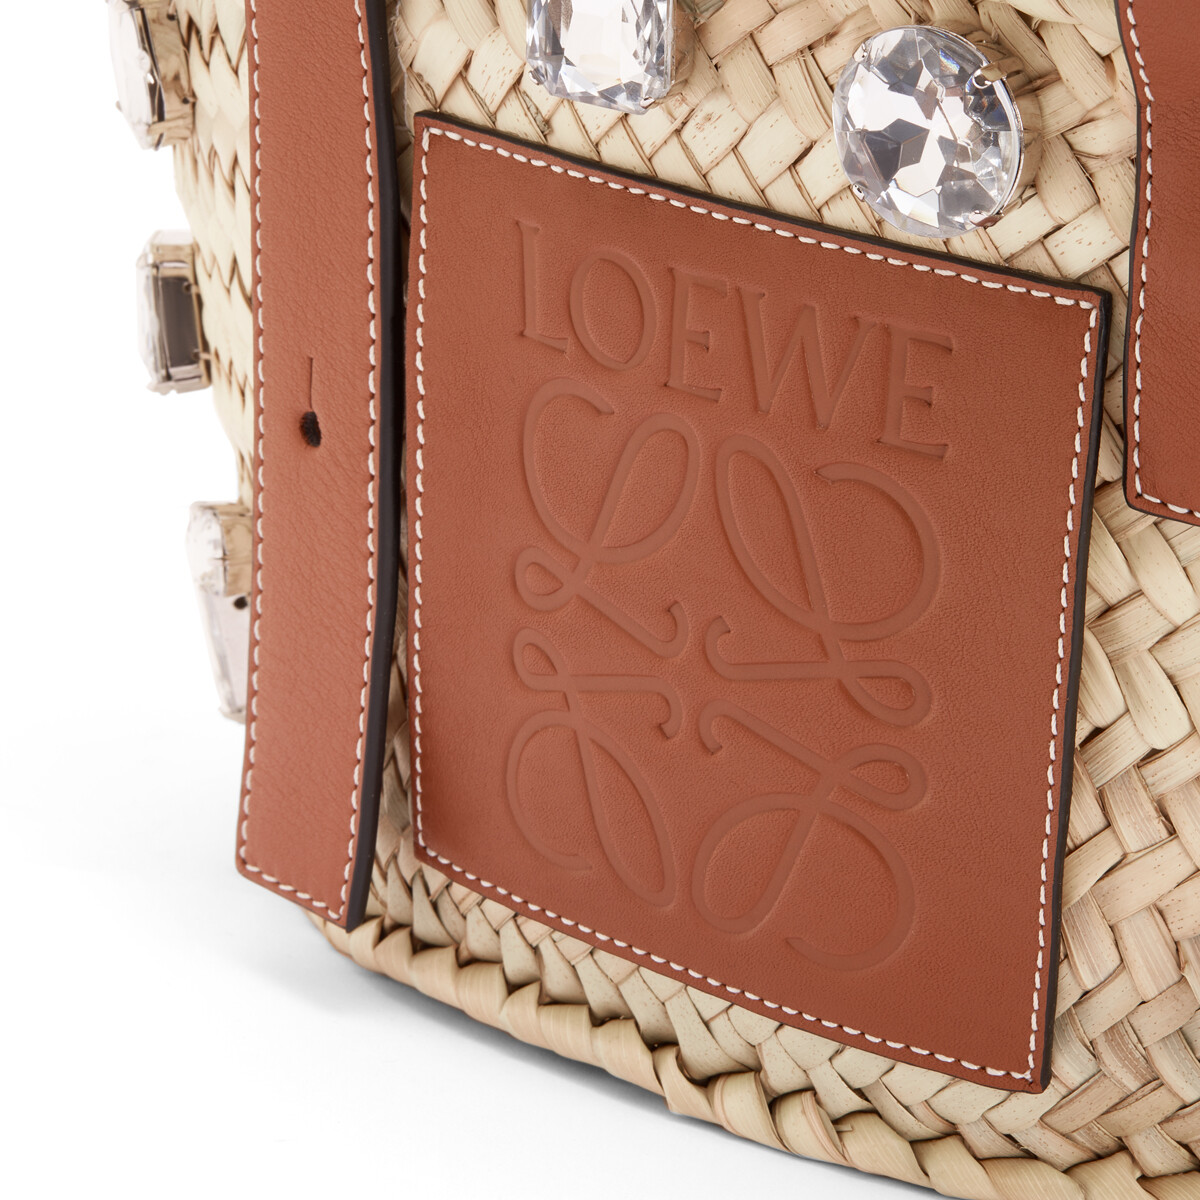 LOEWE Basket Stones Small Bag Natural/Tan front